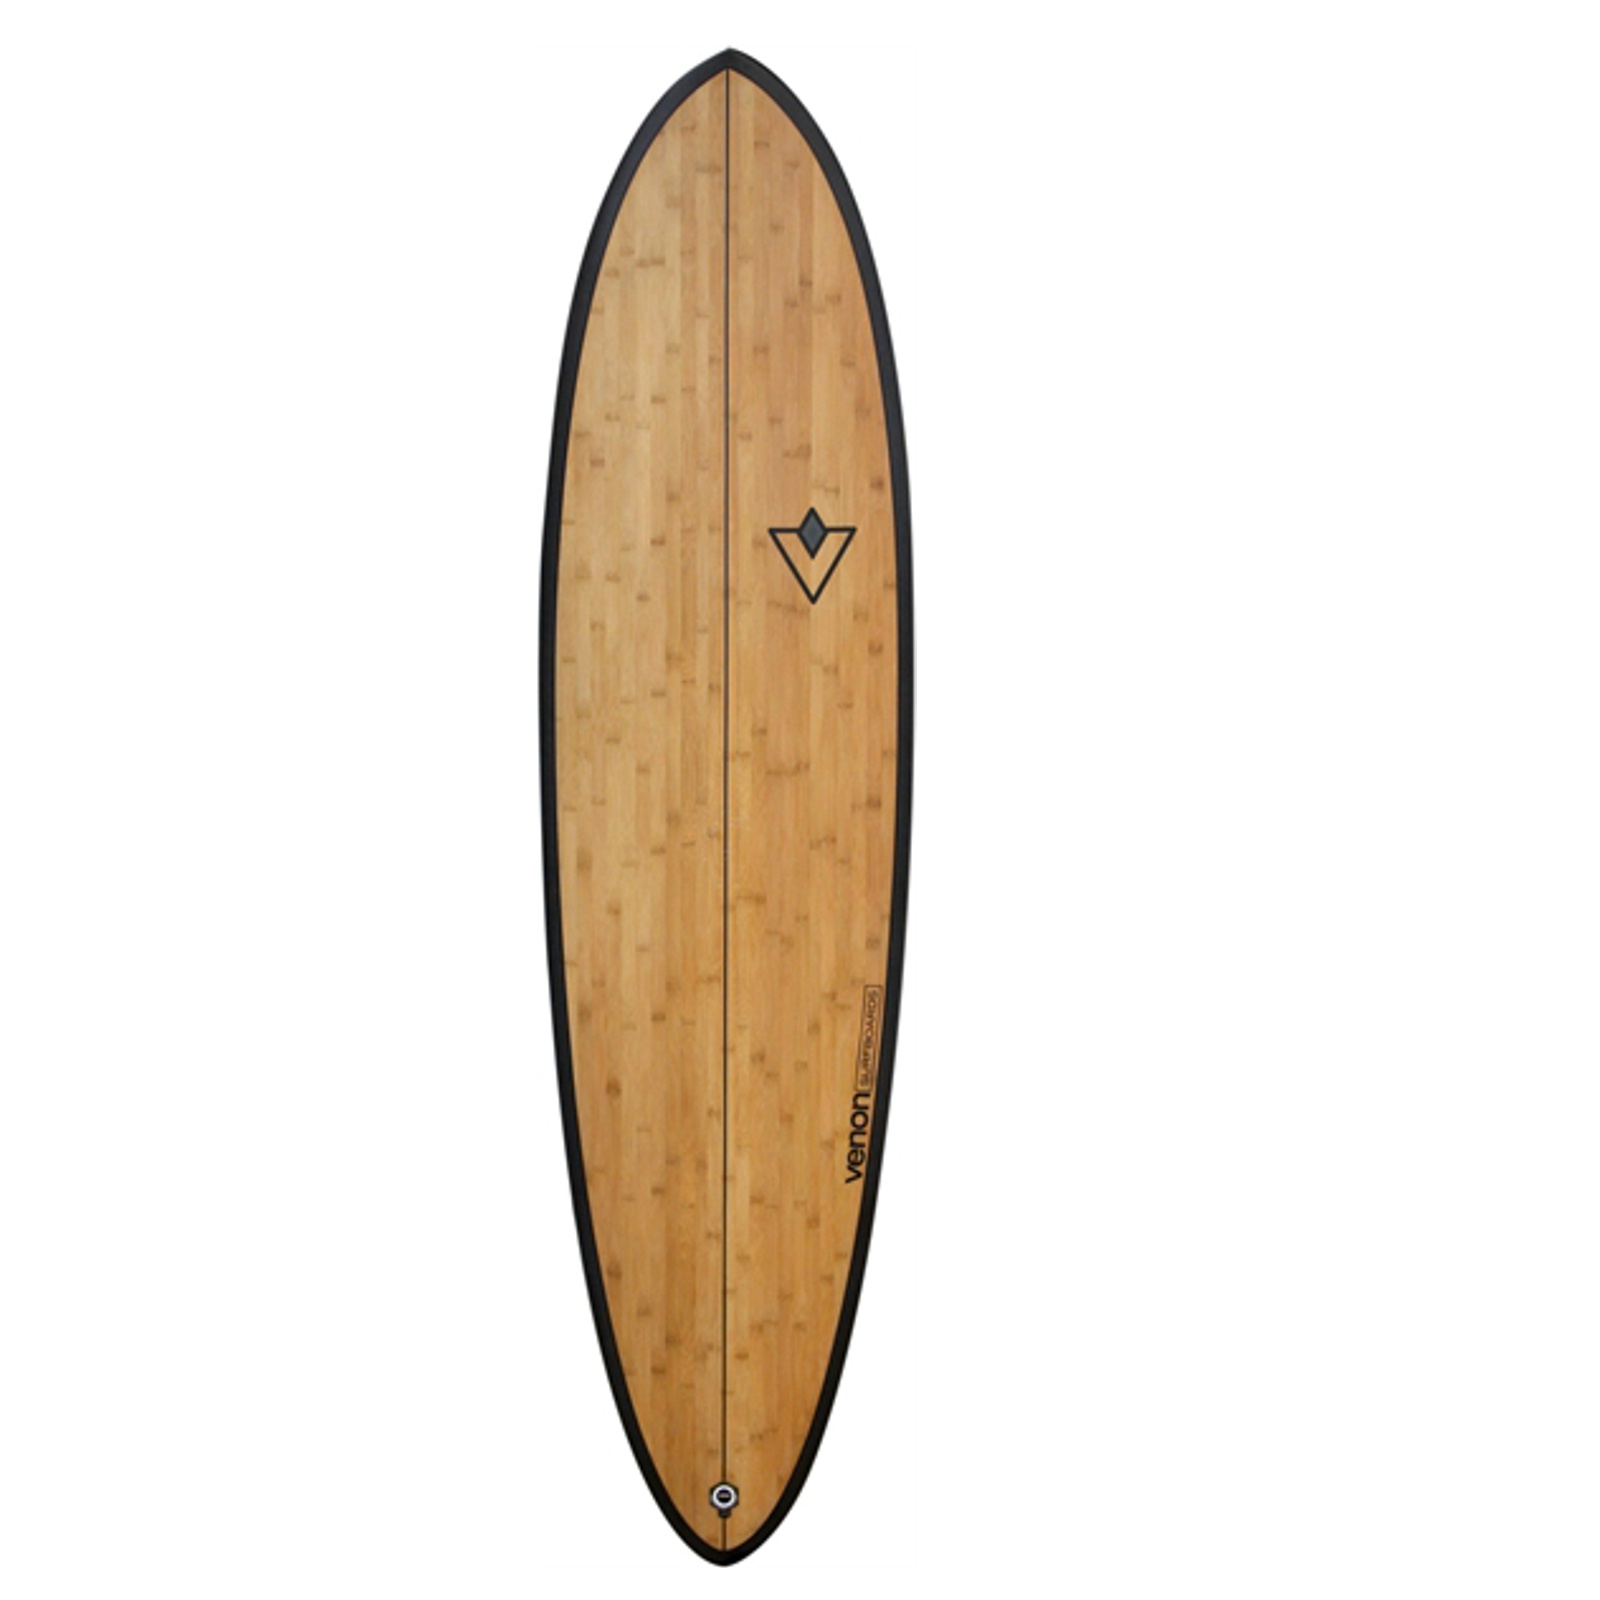 Surfboard VENON Spindle 7.2 Bambus